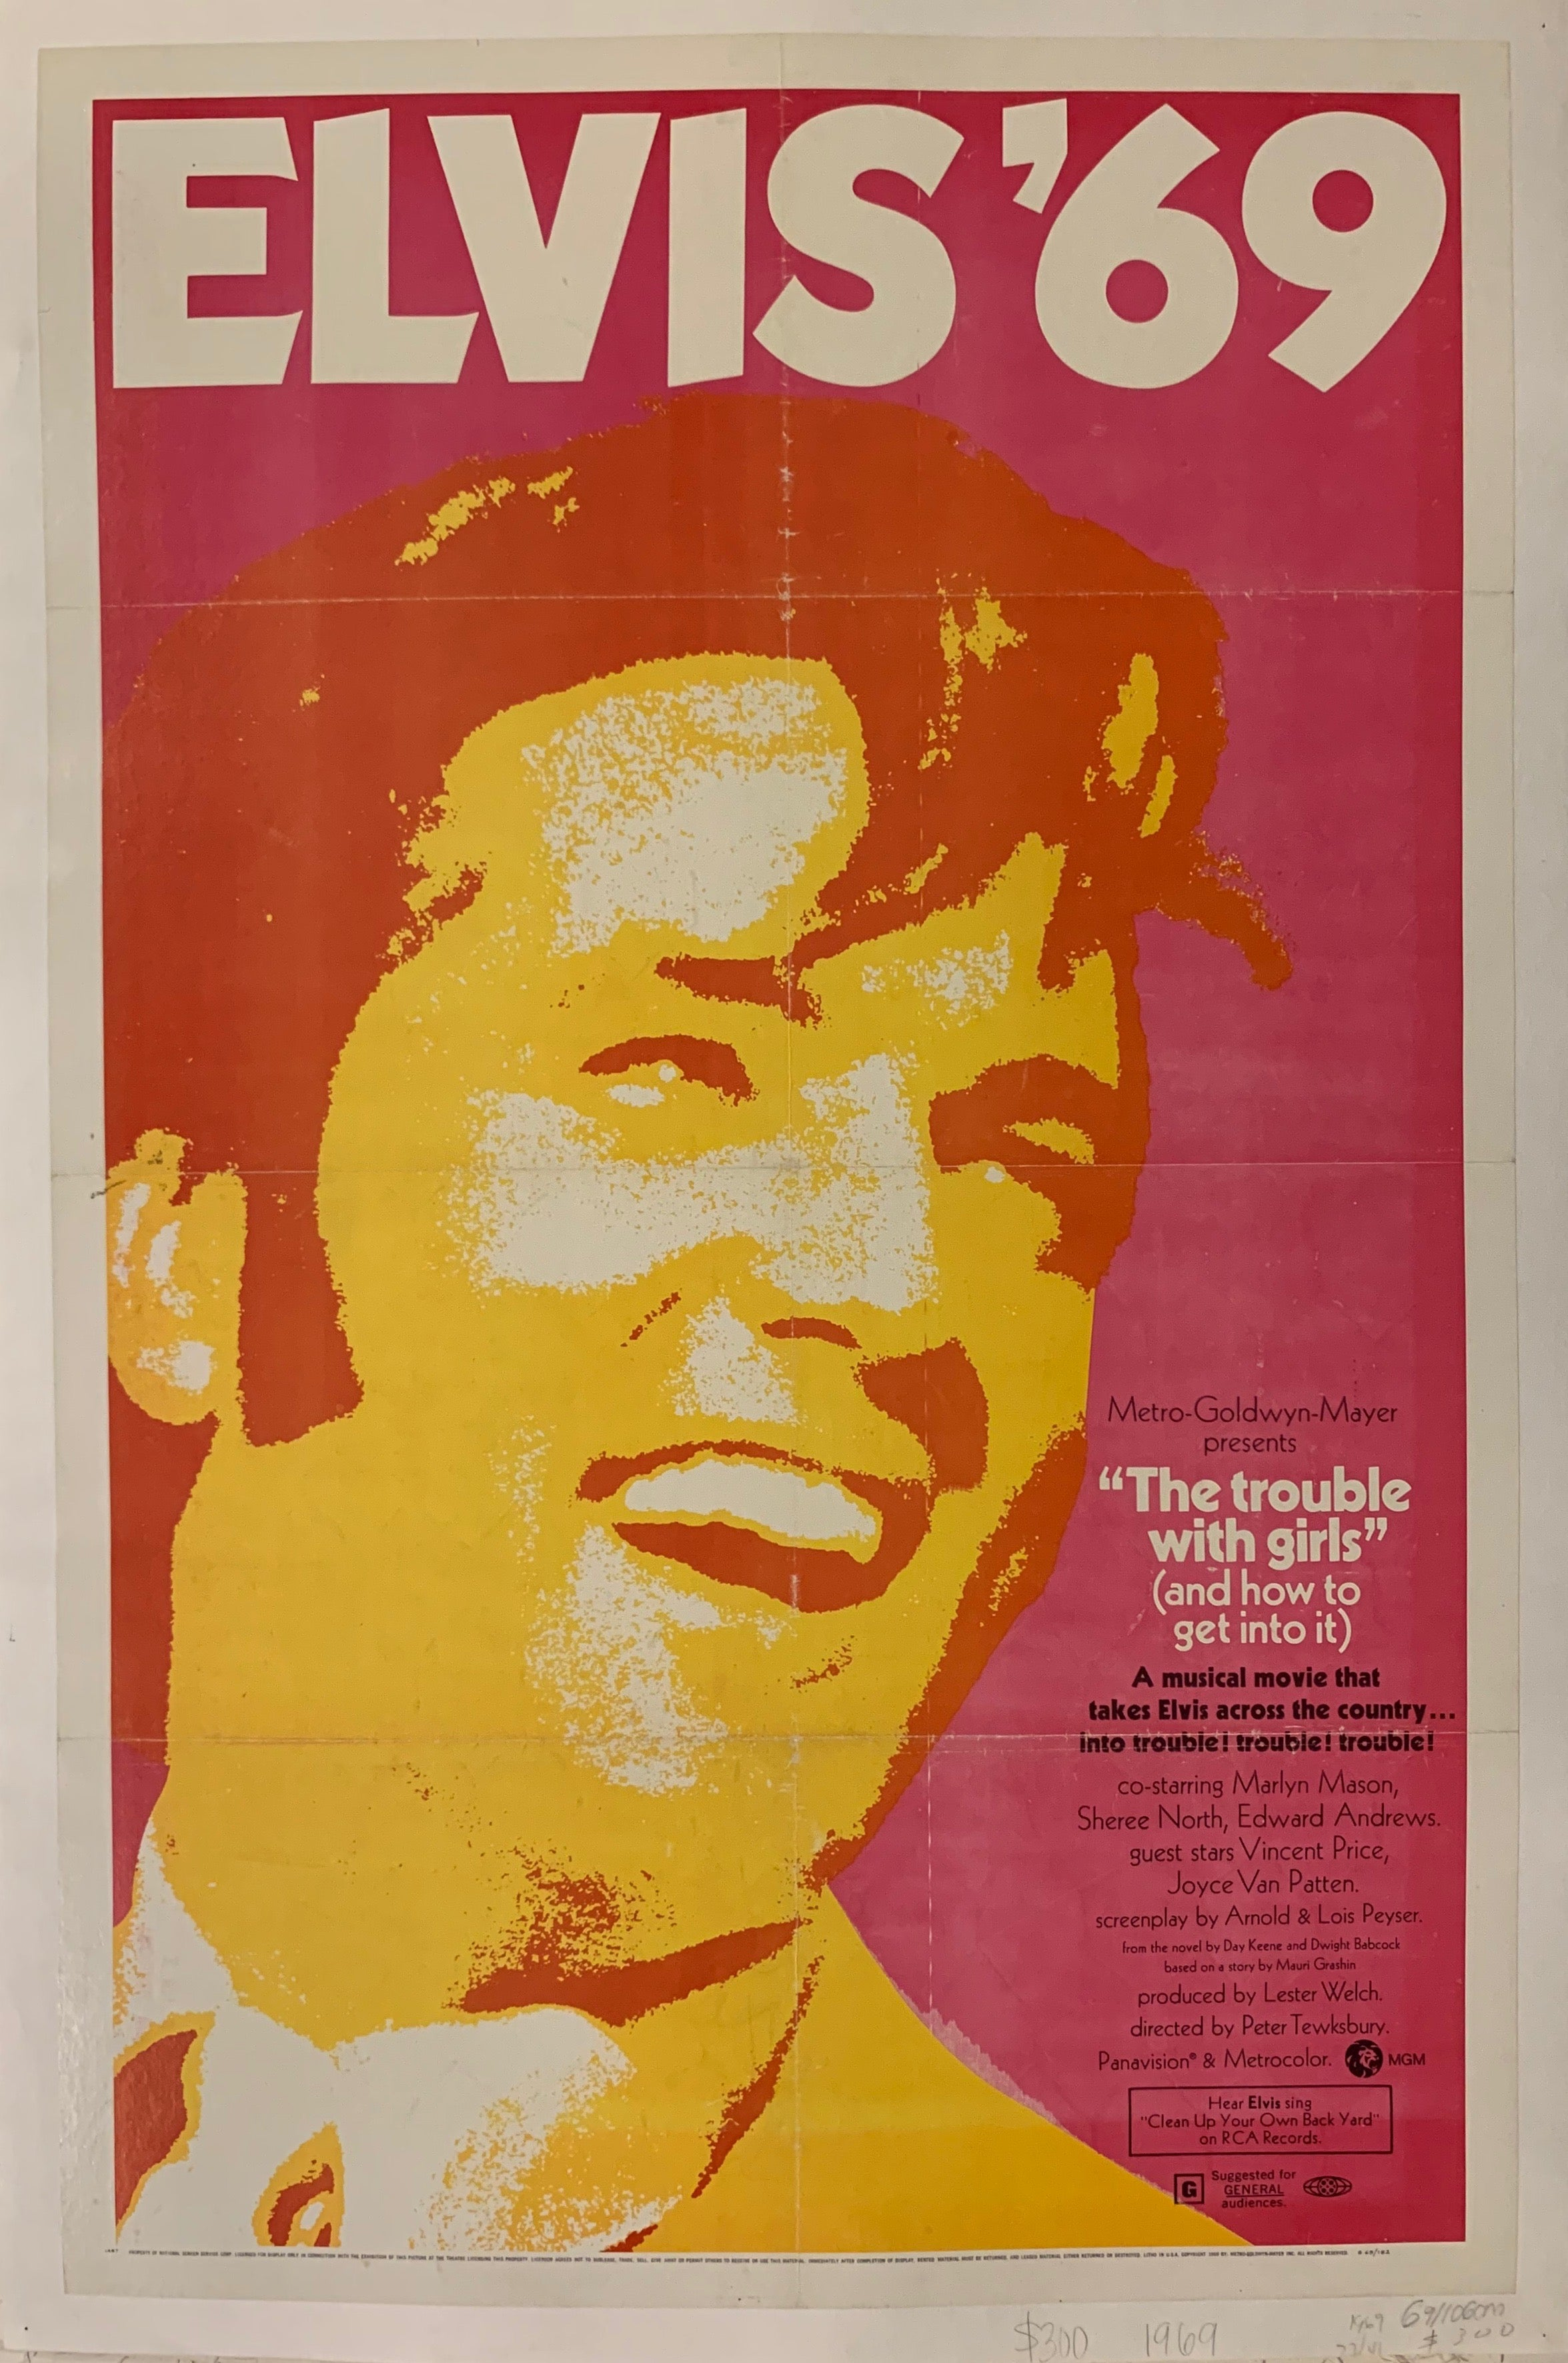 The Trouble With Girls Film Poster